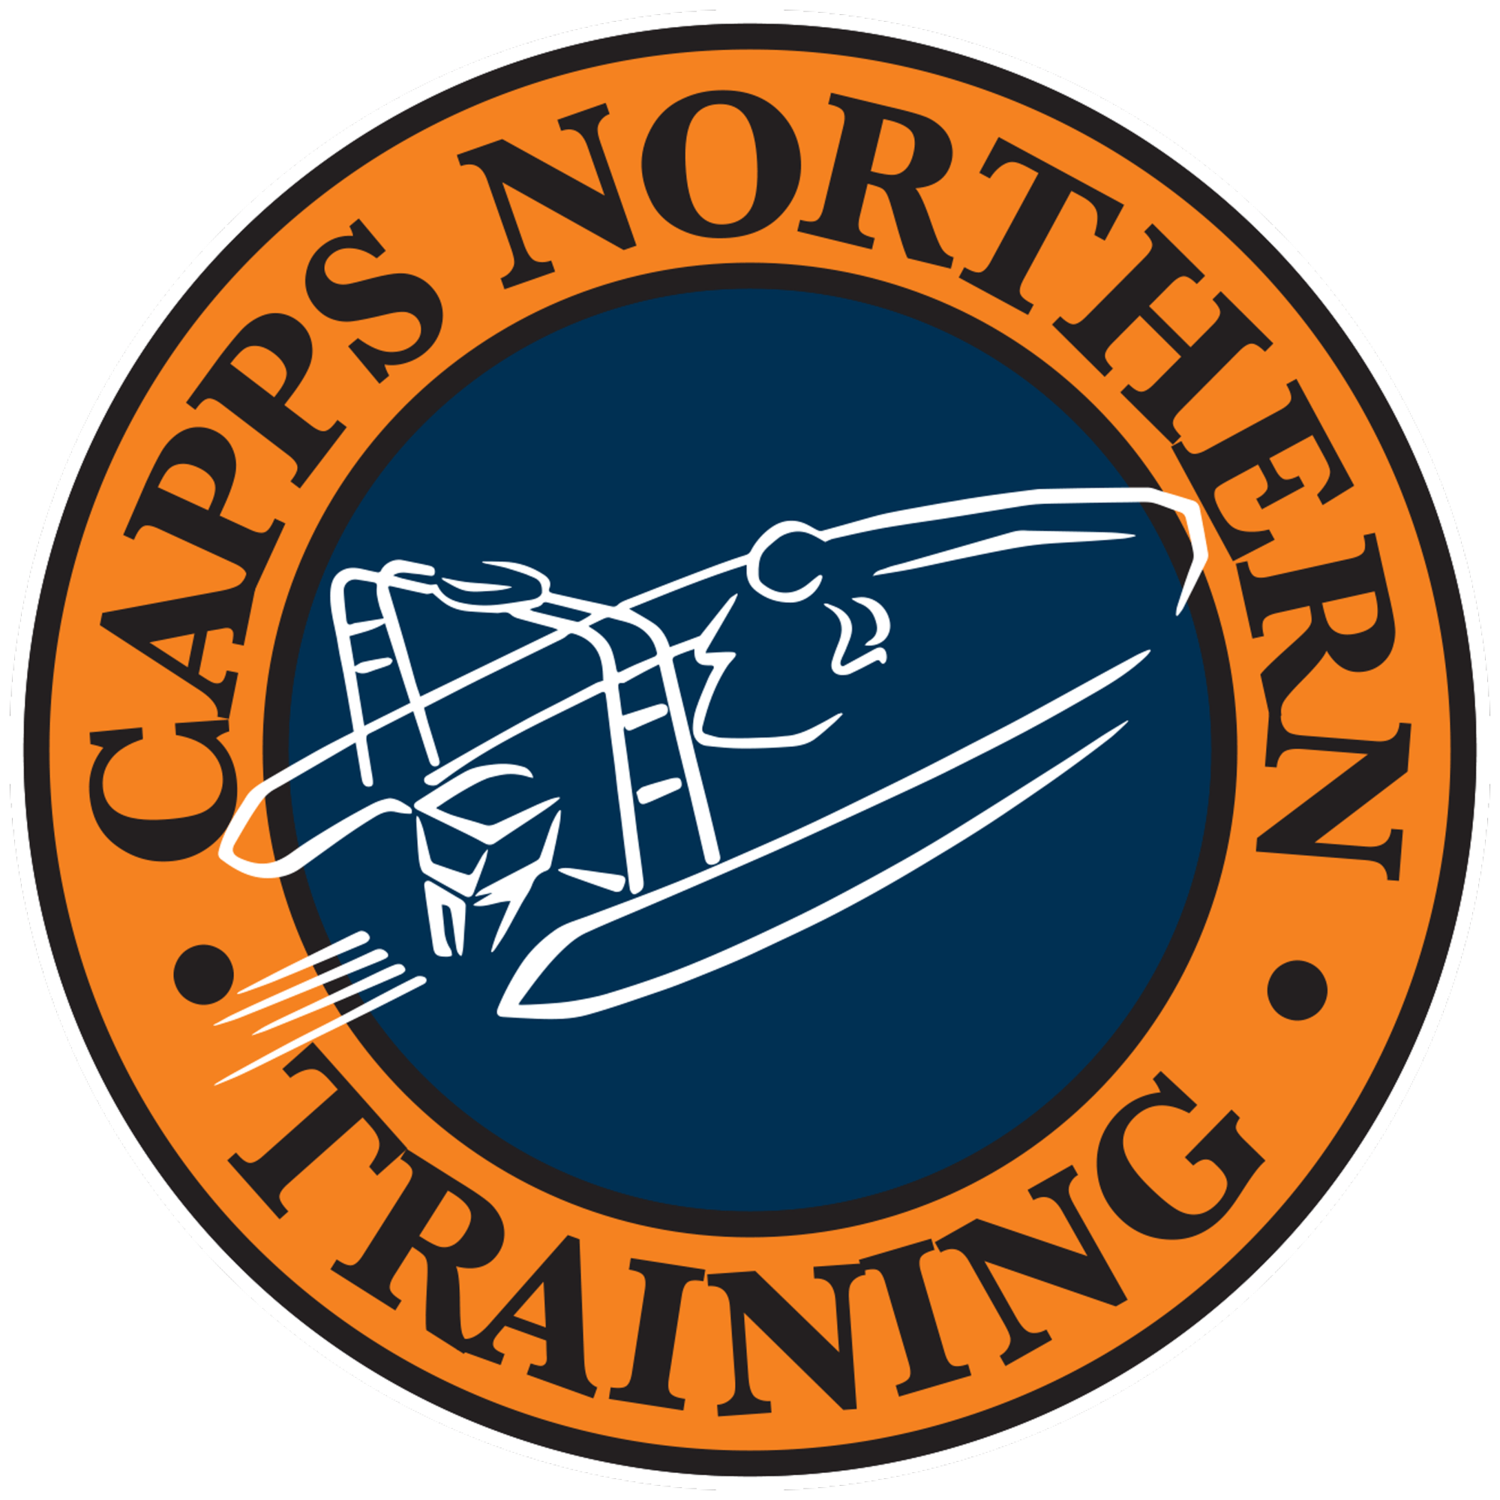 CAPP'S Northern Training